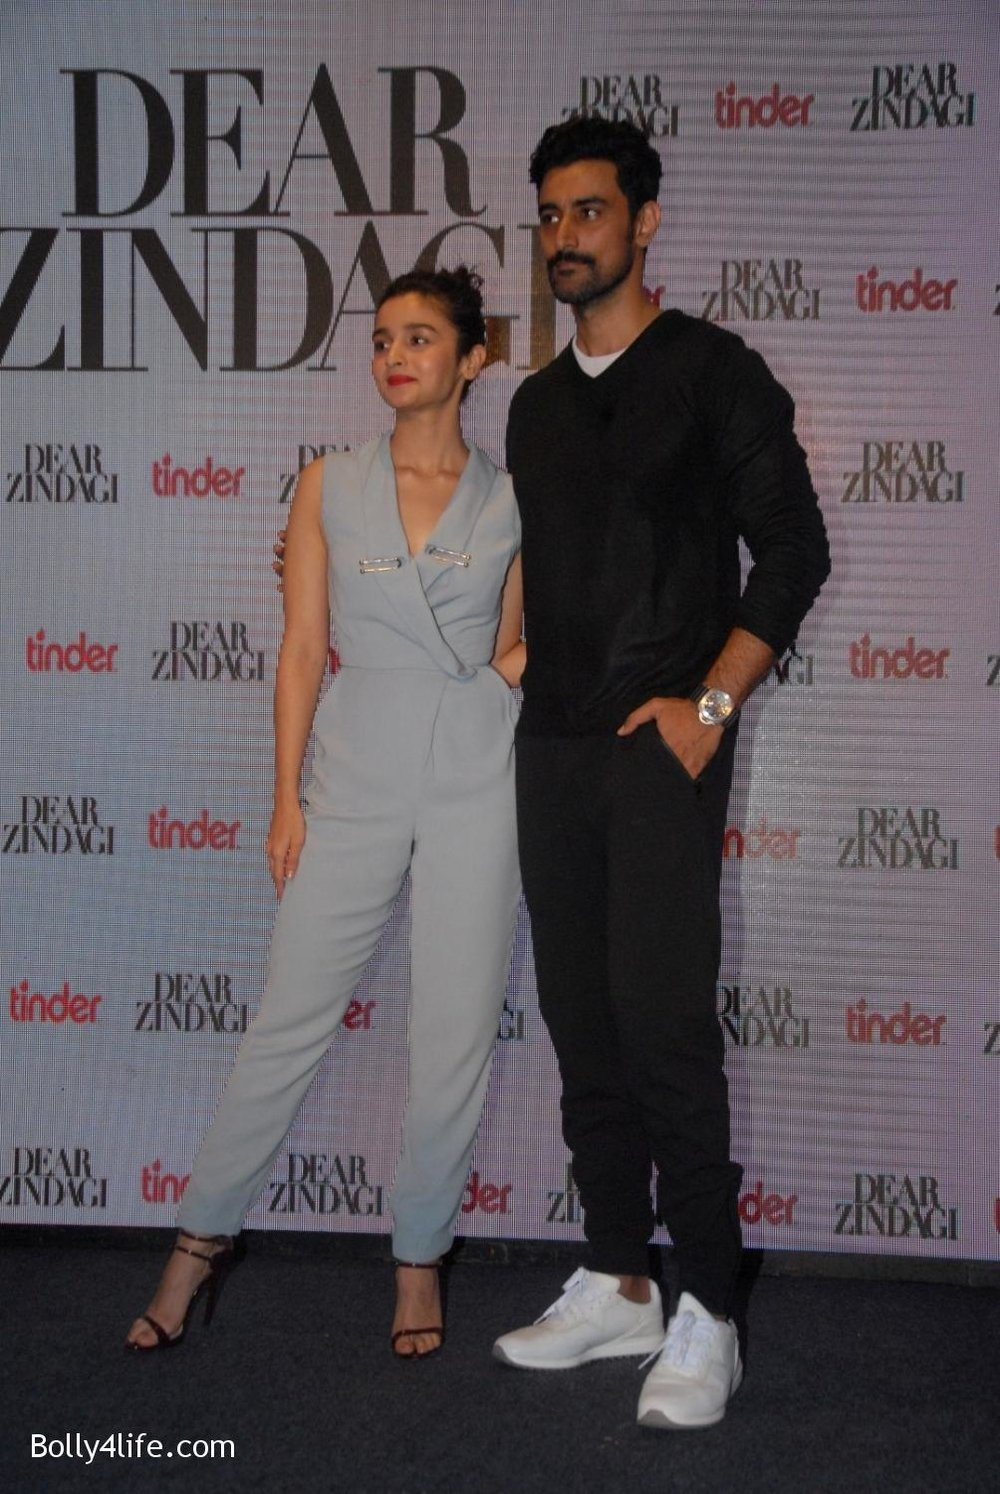 Alia-Bhatt-and-Kunal-Kapoor-during-promotion-of-film-Dear-Zindagi-3.jpg